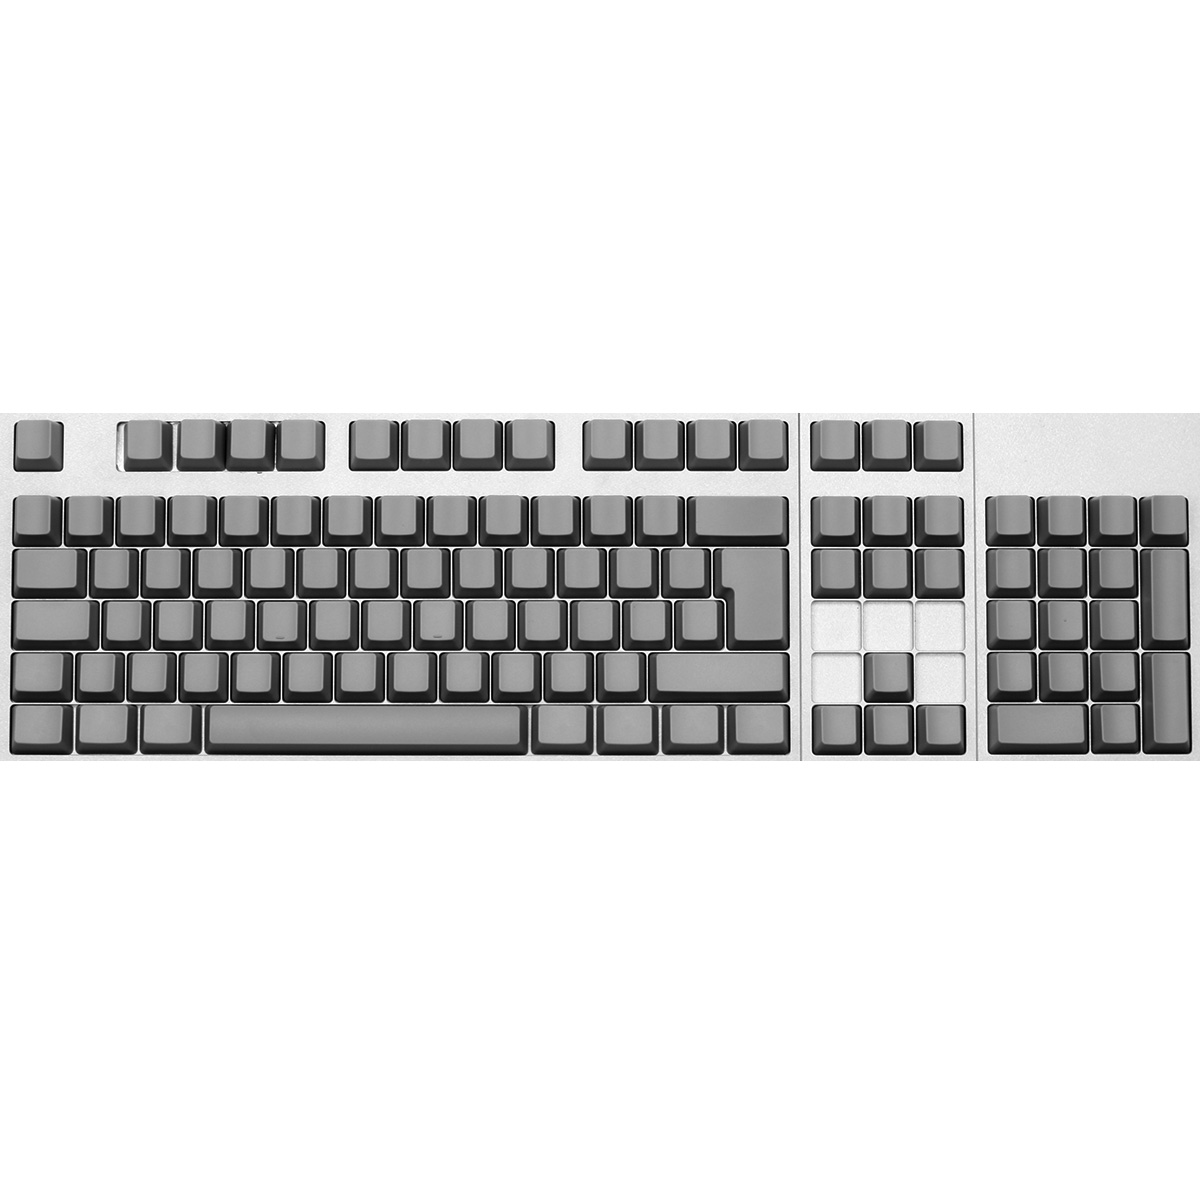 max iso 105 key cherry mx full replacement keycap set blank